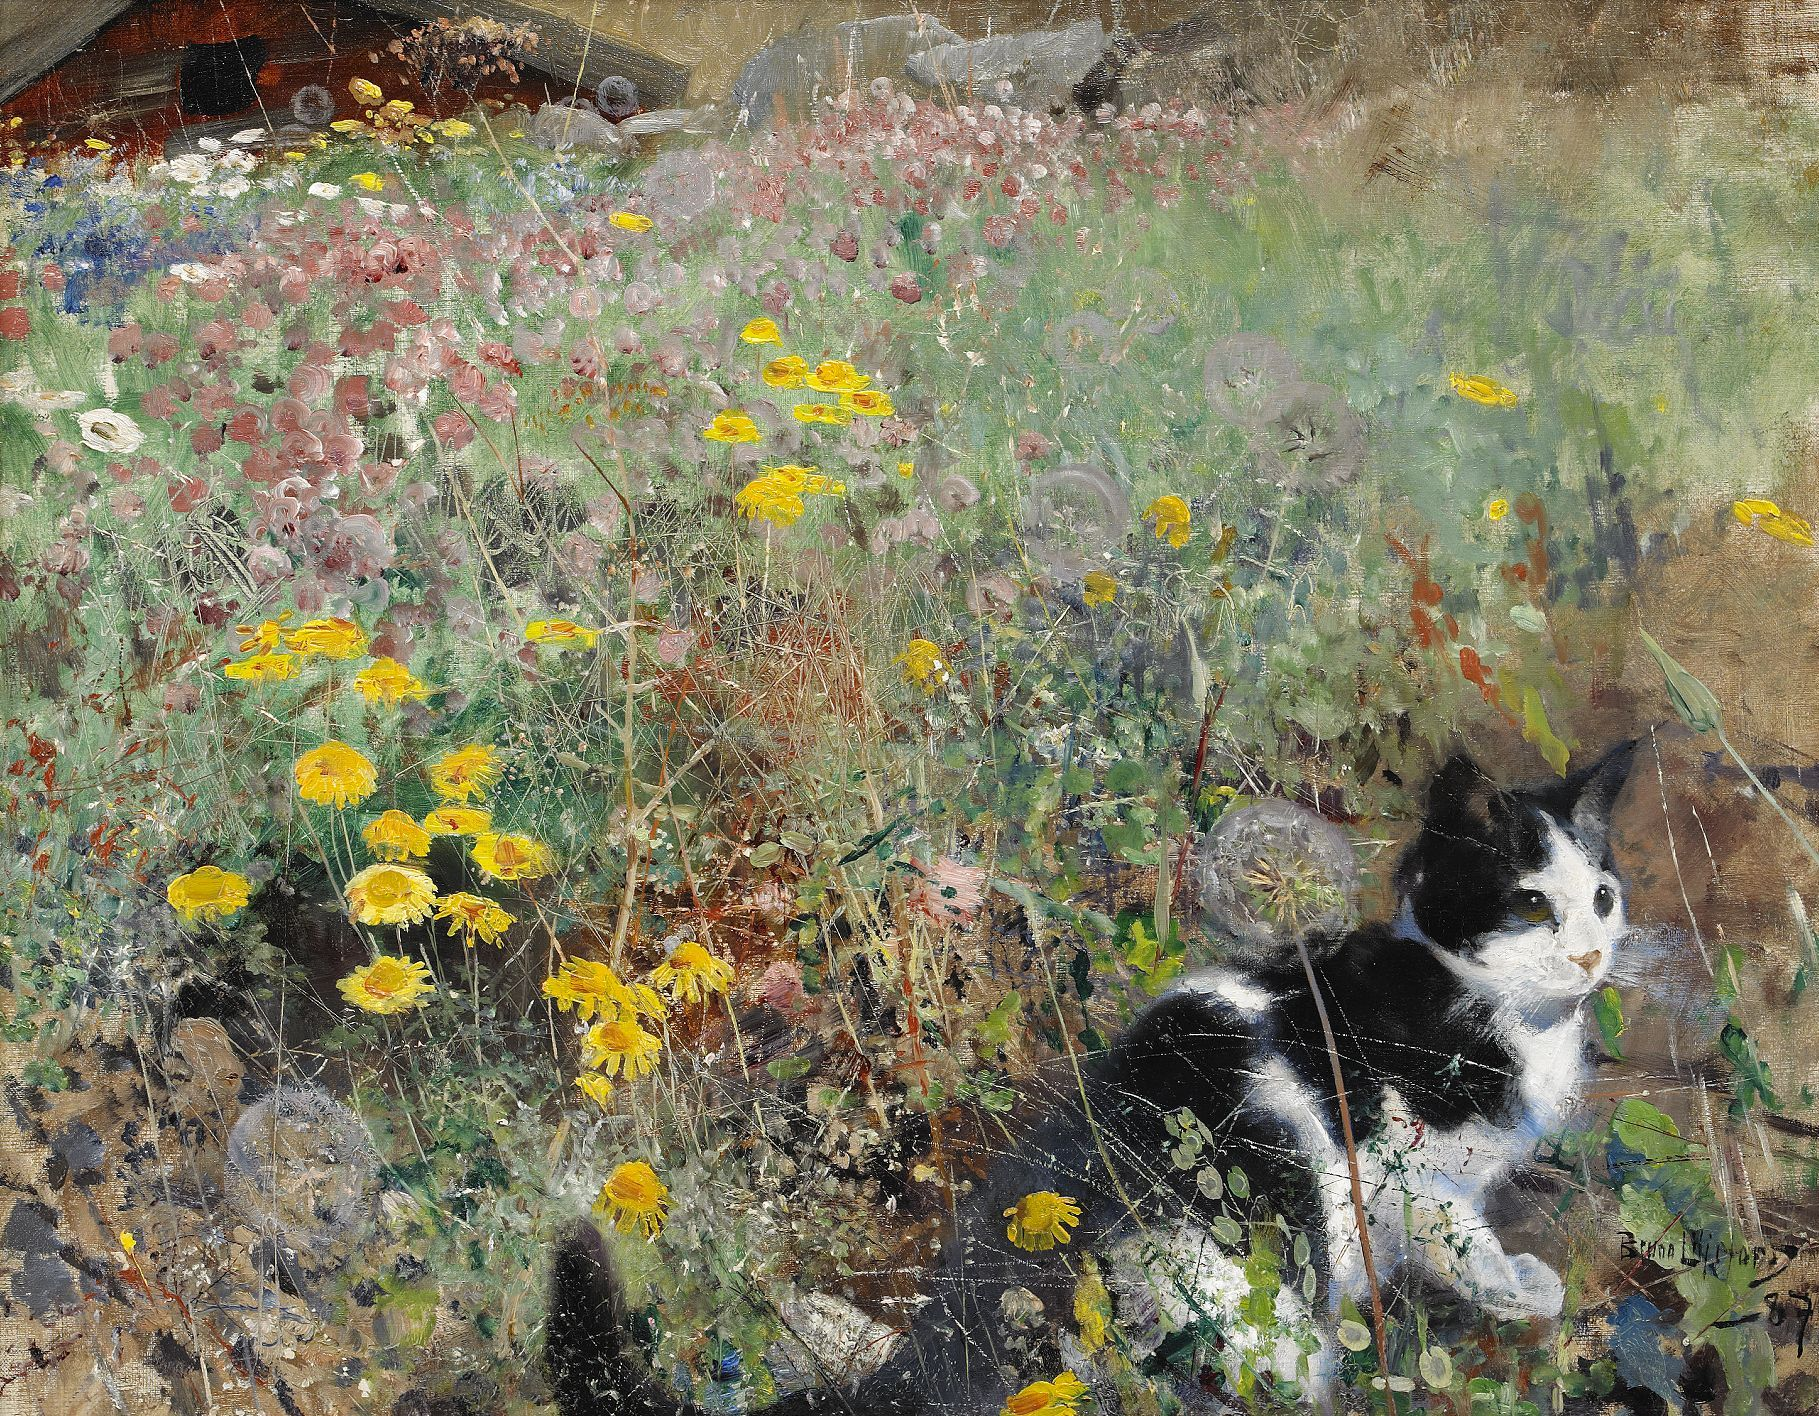 Bruno Andreas Liljefors (1860-1939) — Cat on Flowerbed, 1887 (1819×1416)